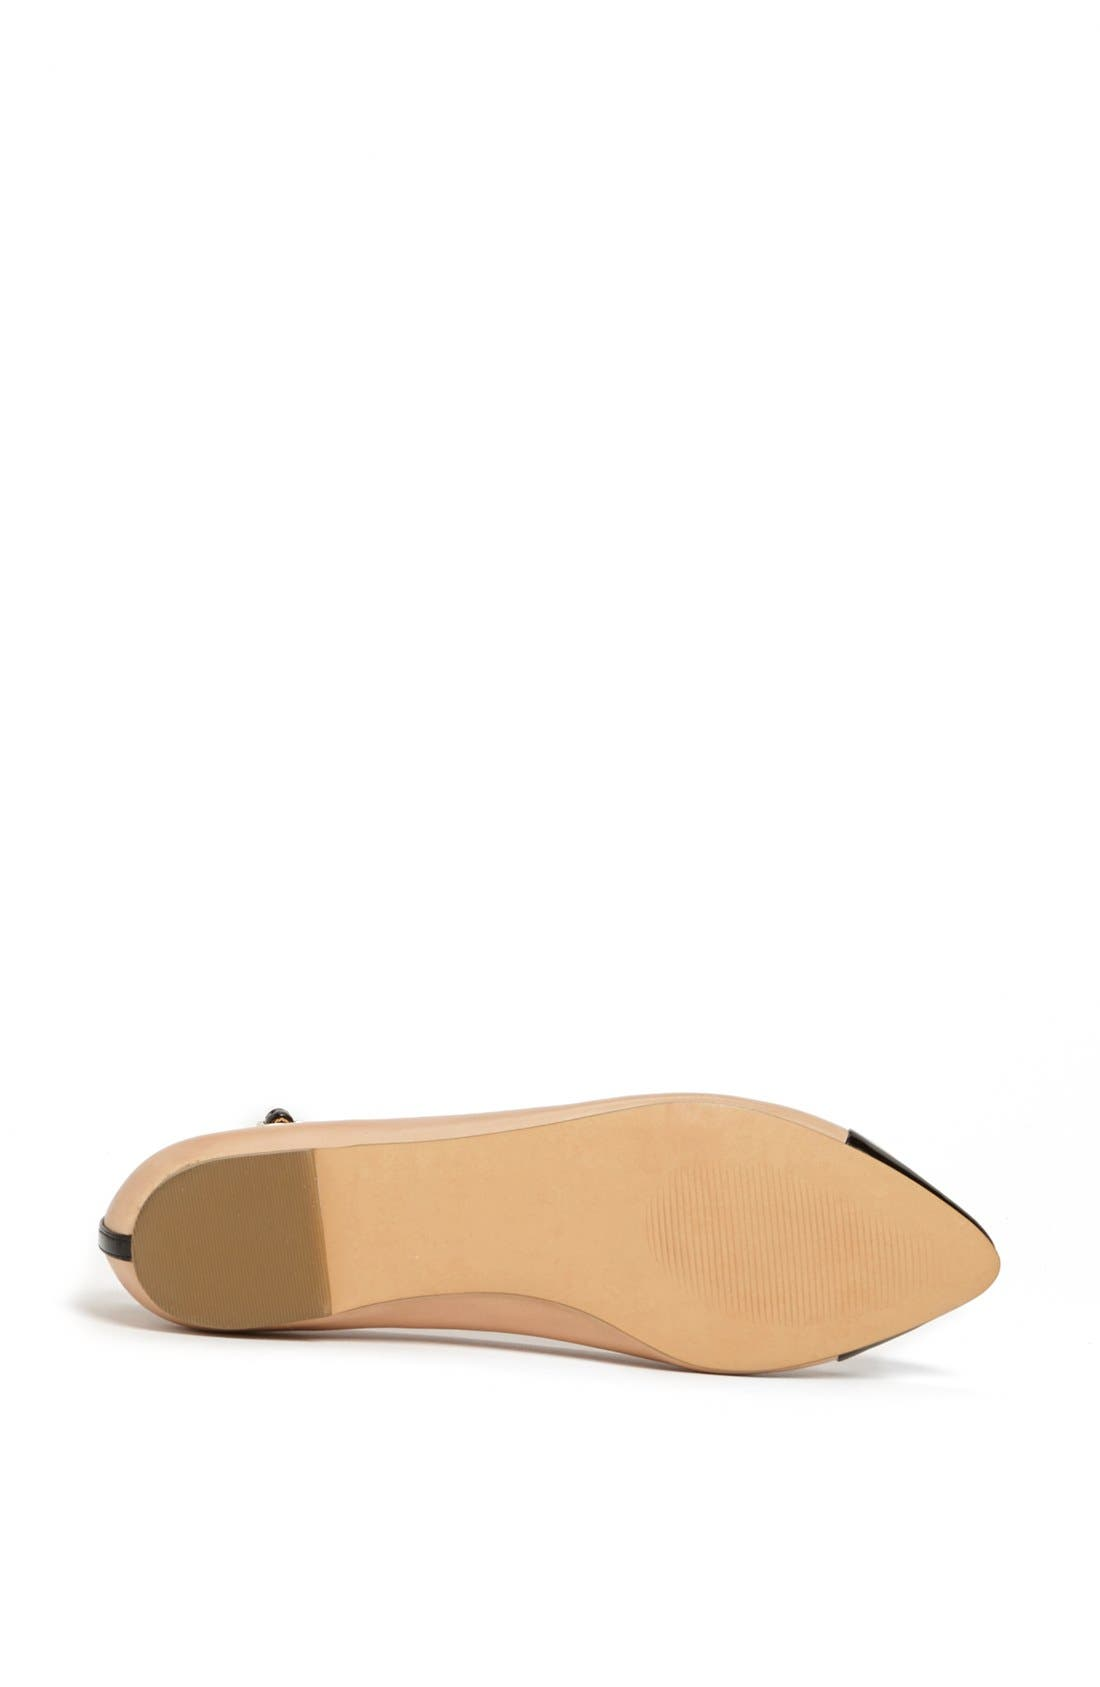 ,                             Julianne Hough for Sole Society 'Addy' Flat,                             Alternate thumbnail 25, color,                             251